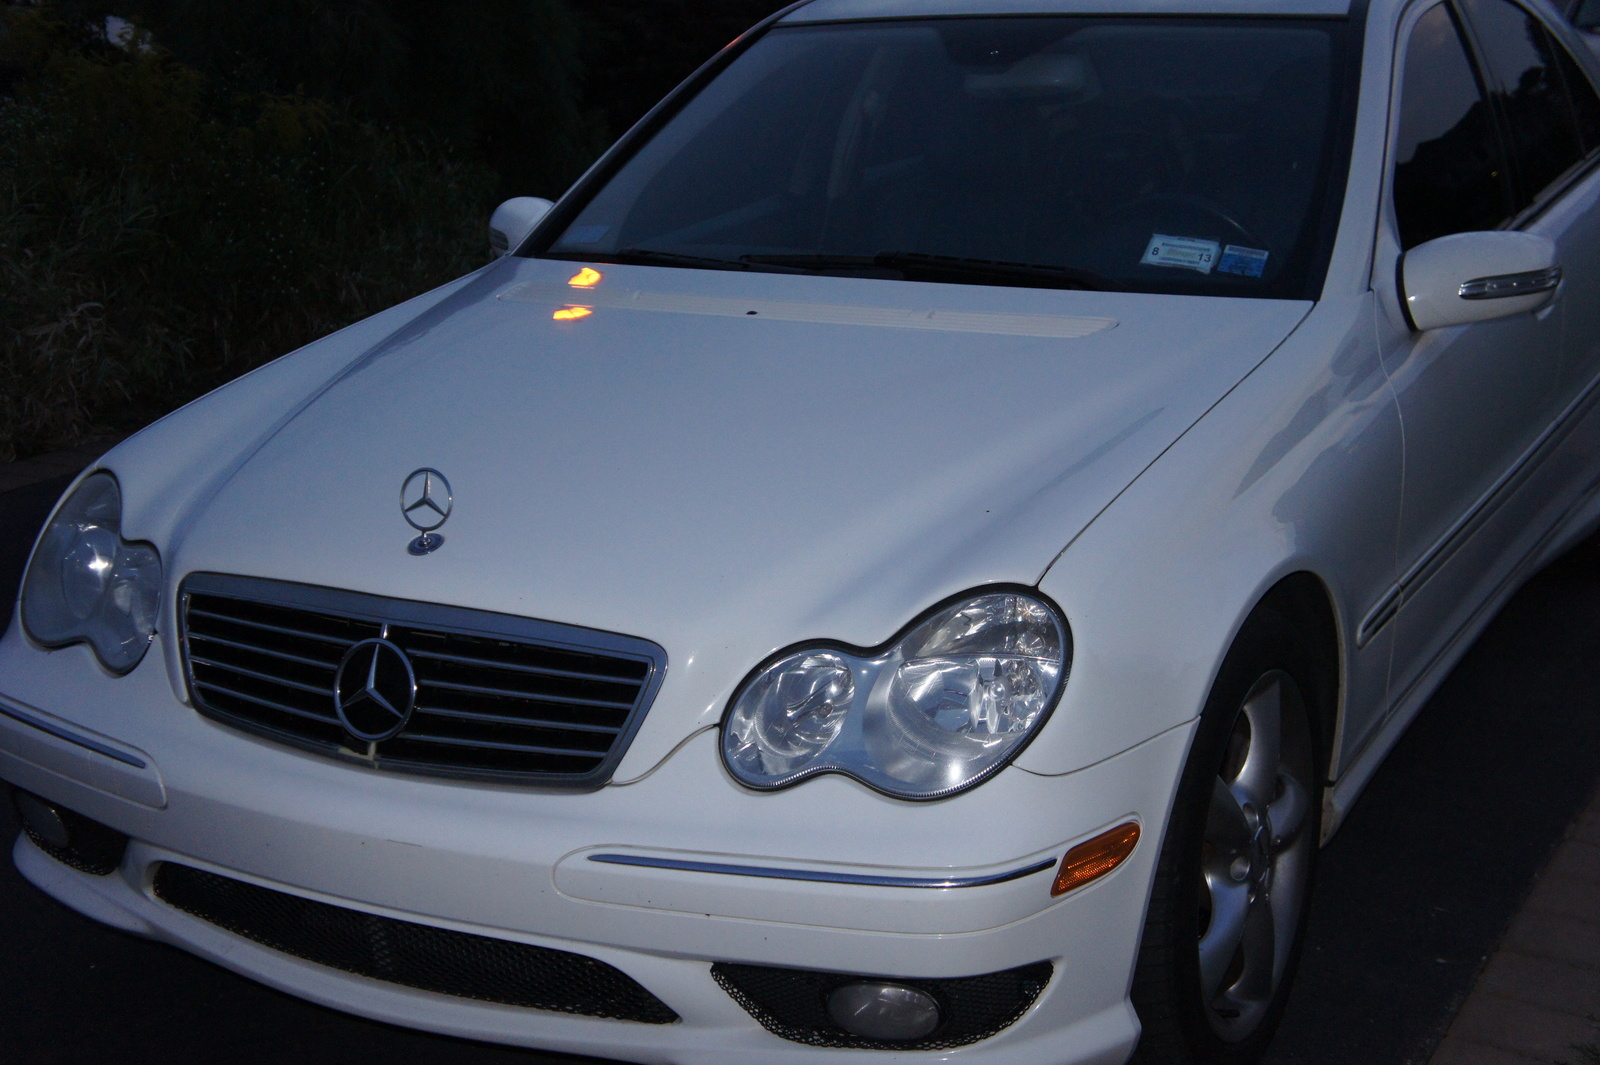 Picture of 2006 mercedes benz c class c230 sport 4dr sedan for Mercedes benz 2006 c230 sport